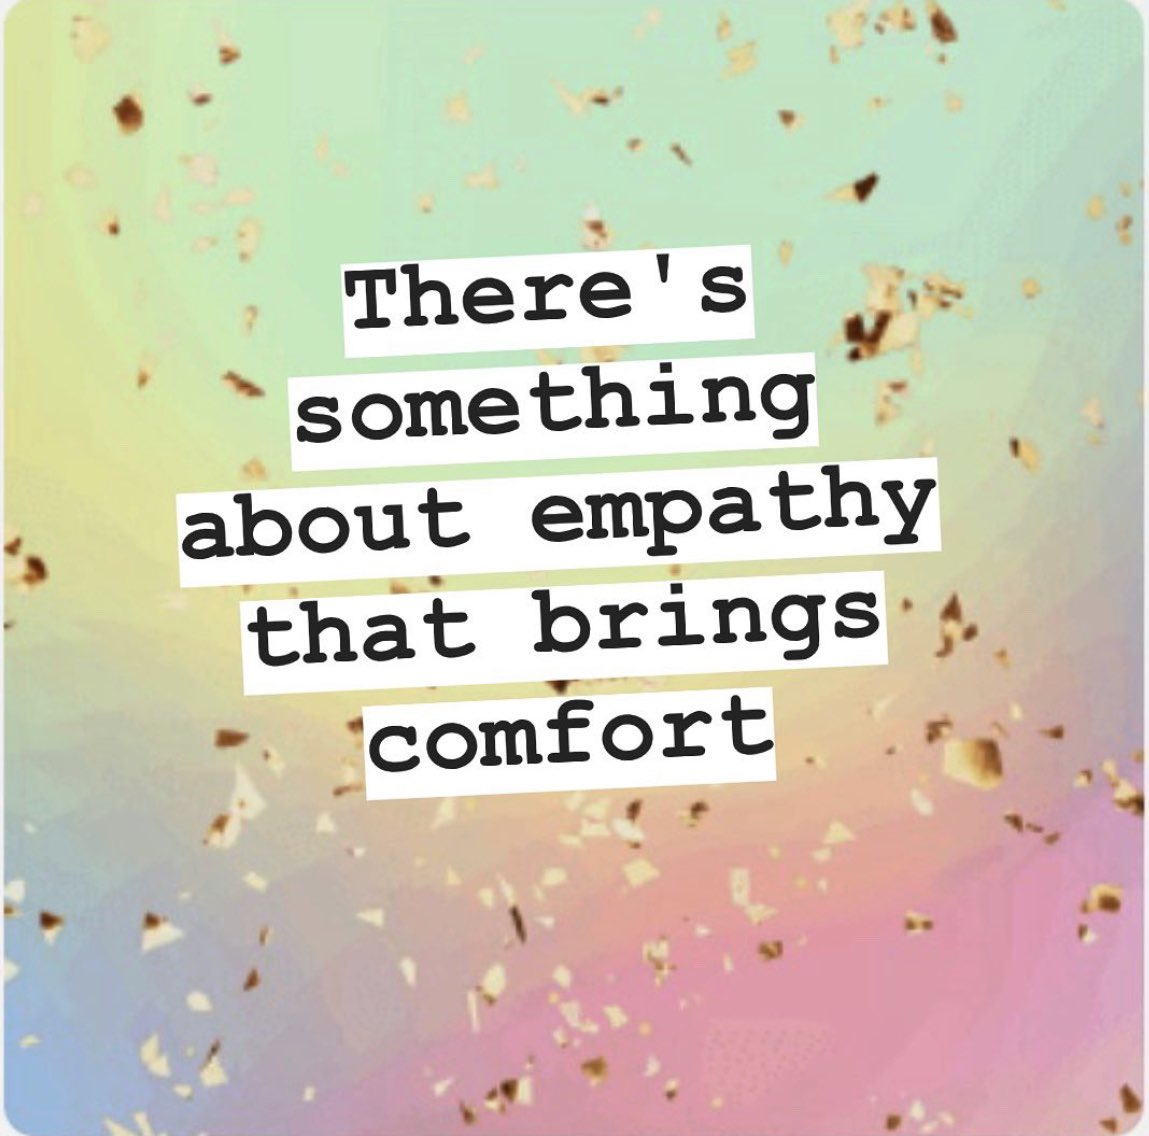 You'd be amazed at how simply being with and offering no advice or solutions could make some one feel safe, secure, seen, and relieved.#empathy #safety #security #loved #love #loveislove #cherish #postoftheday #post #goodvibespic.twitter.com/V4HqqaNB4A